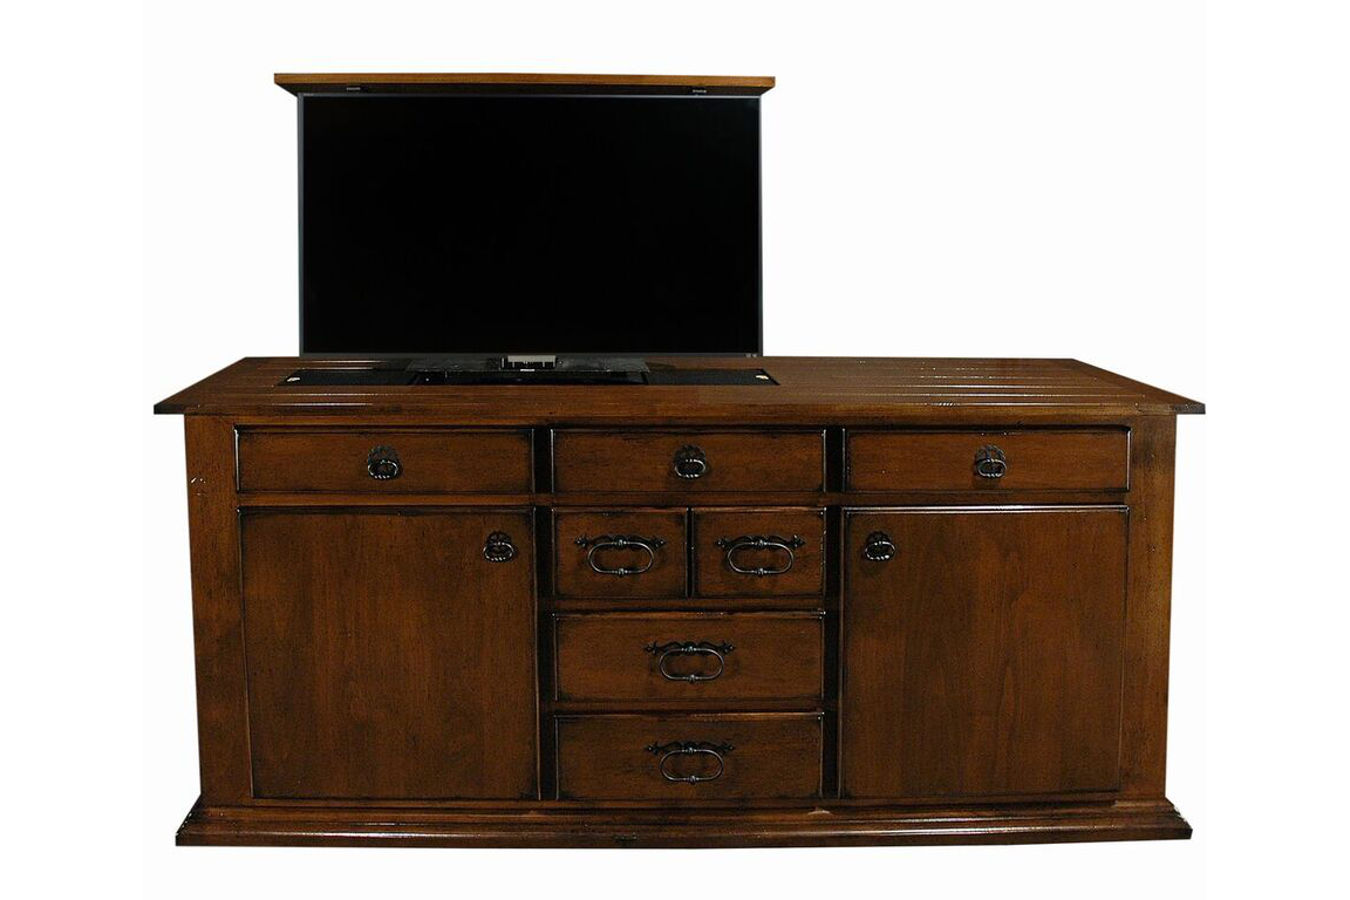 Country Meadow Furniture that hides a TV